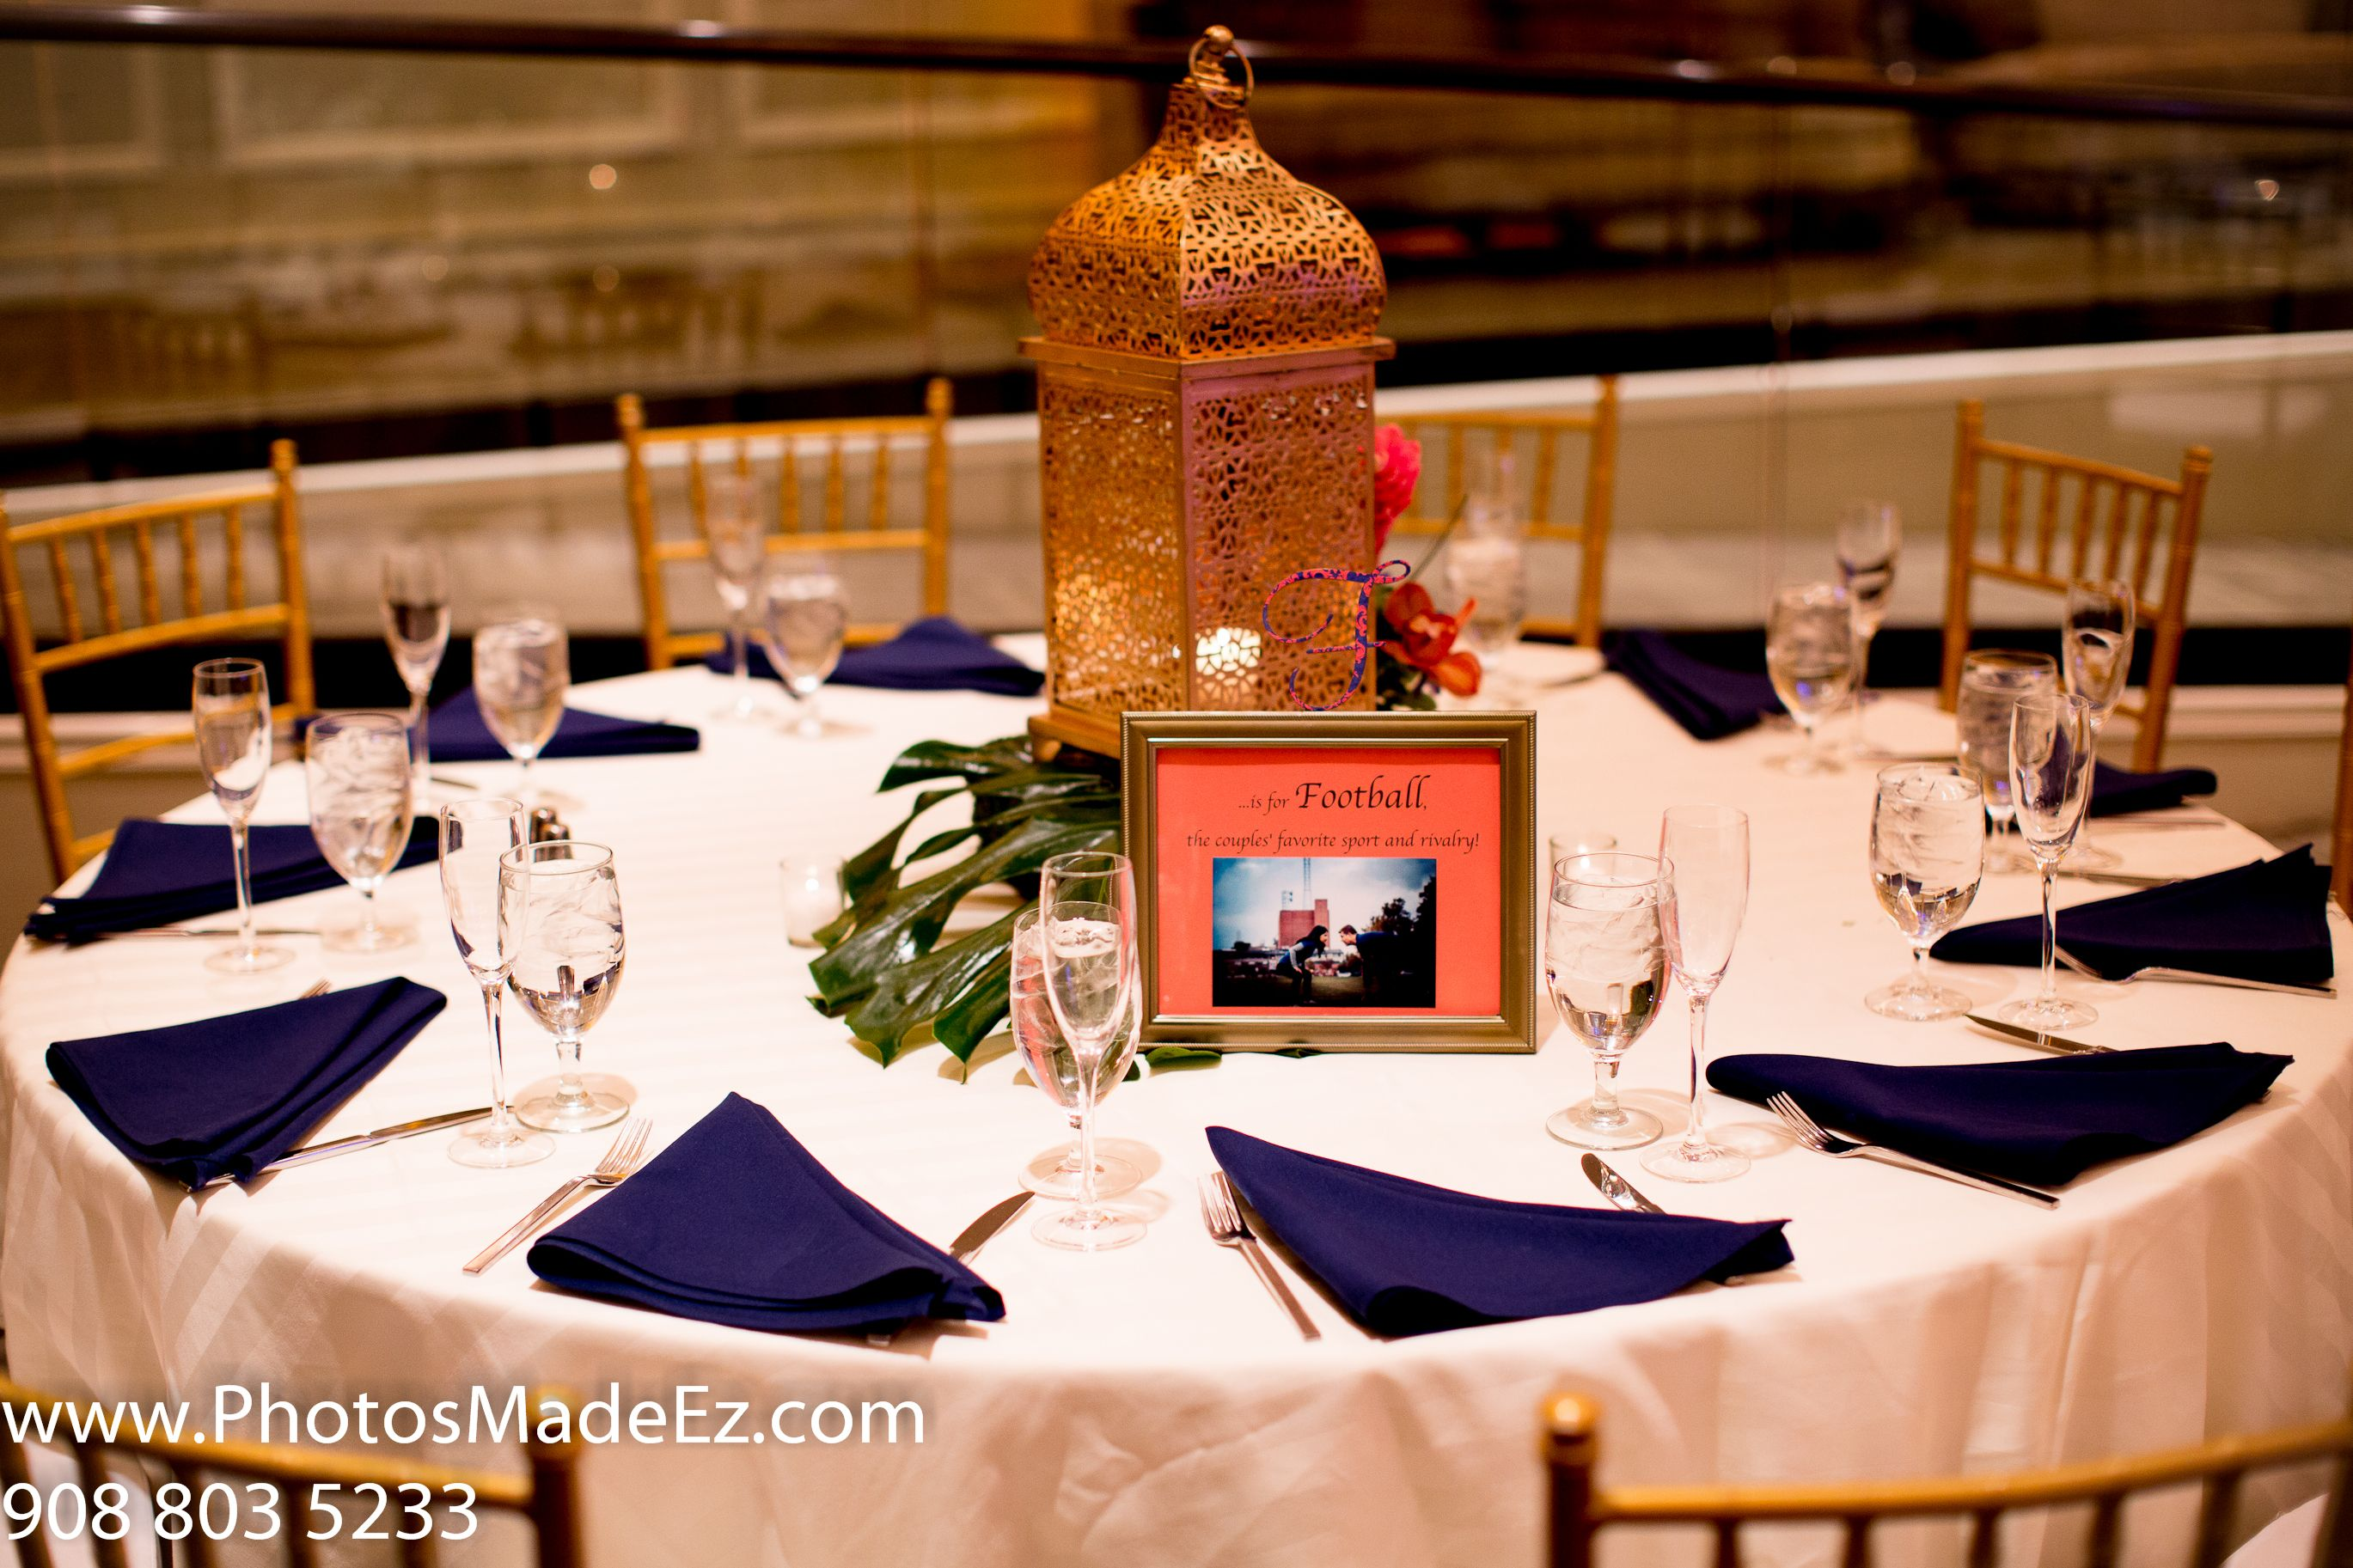 Center piece photo by new jersey based wedding photographer